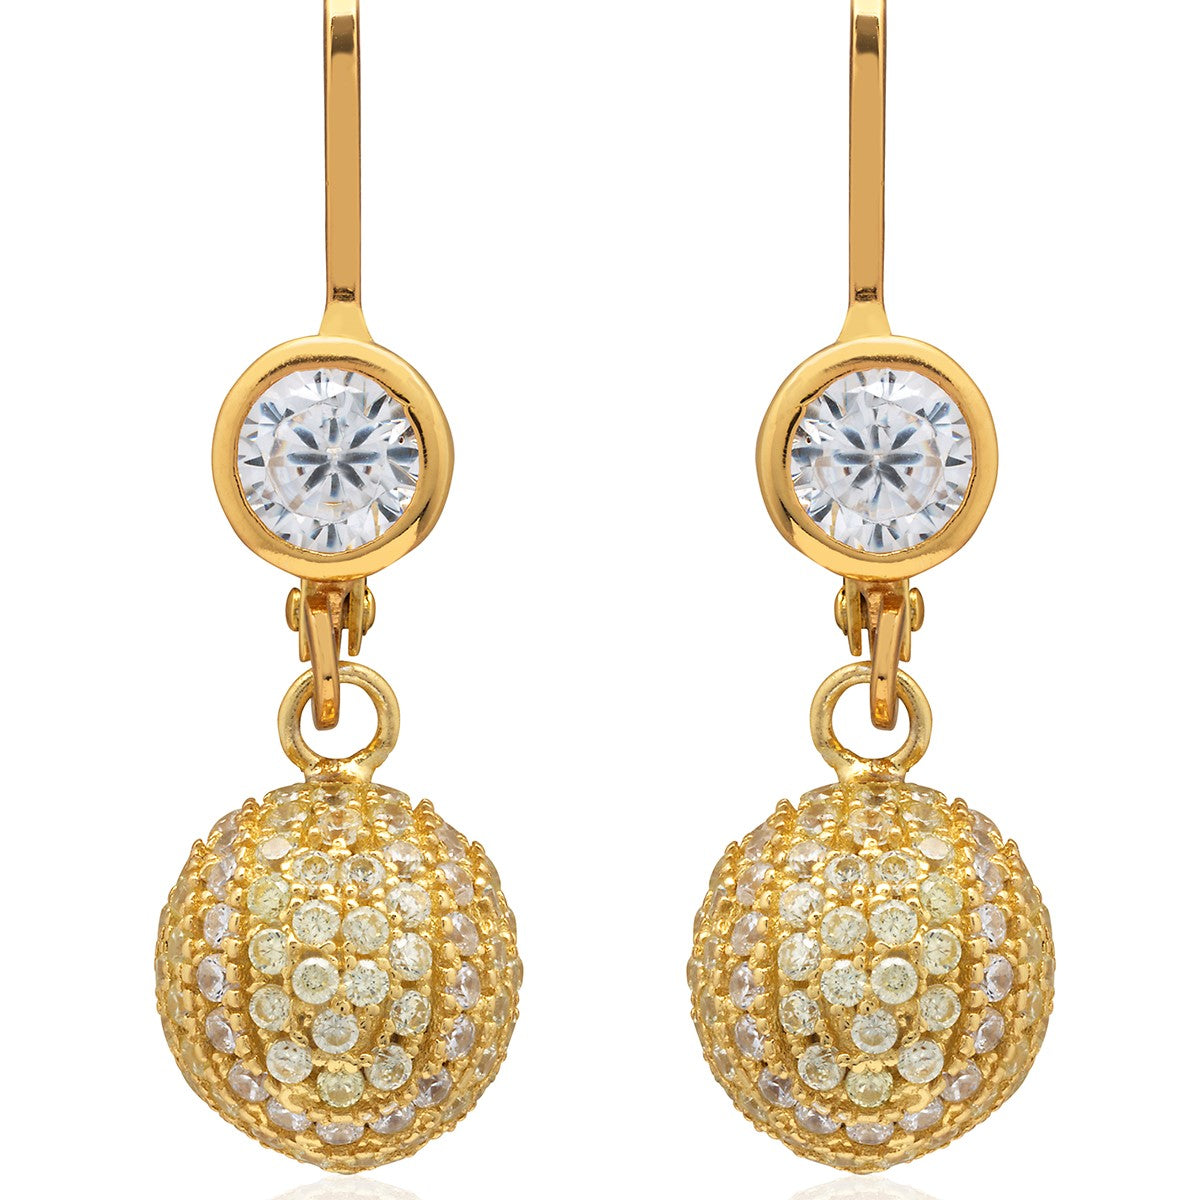 CZ Pave Tennis Ball Lever Back Earrings